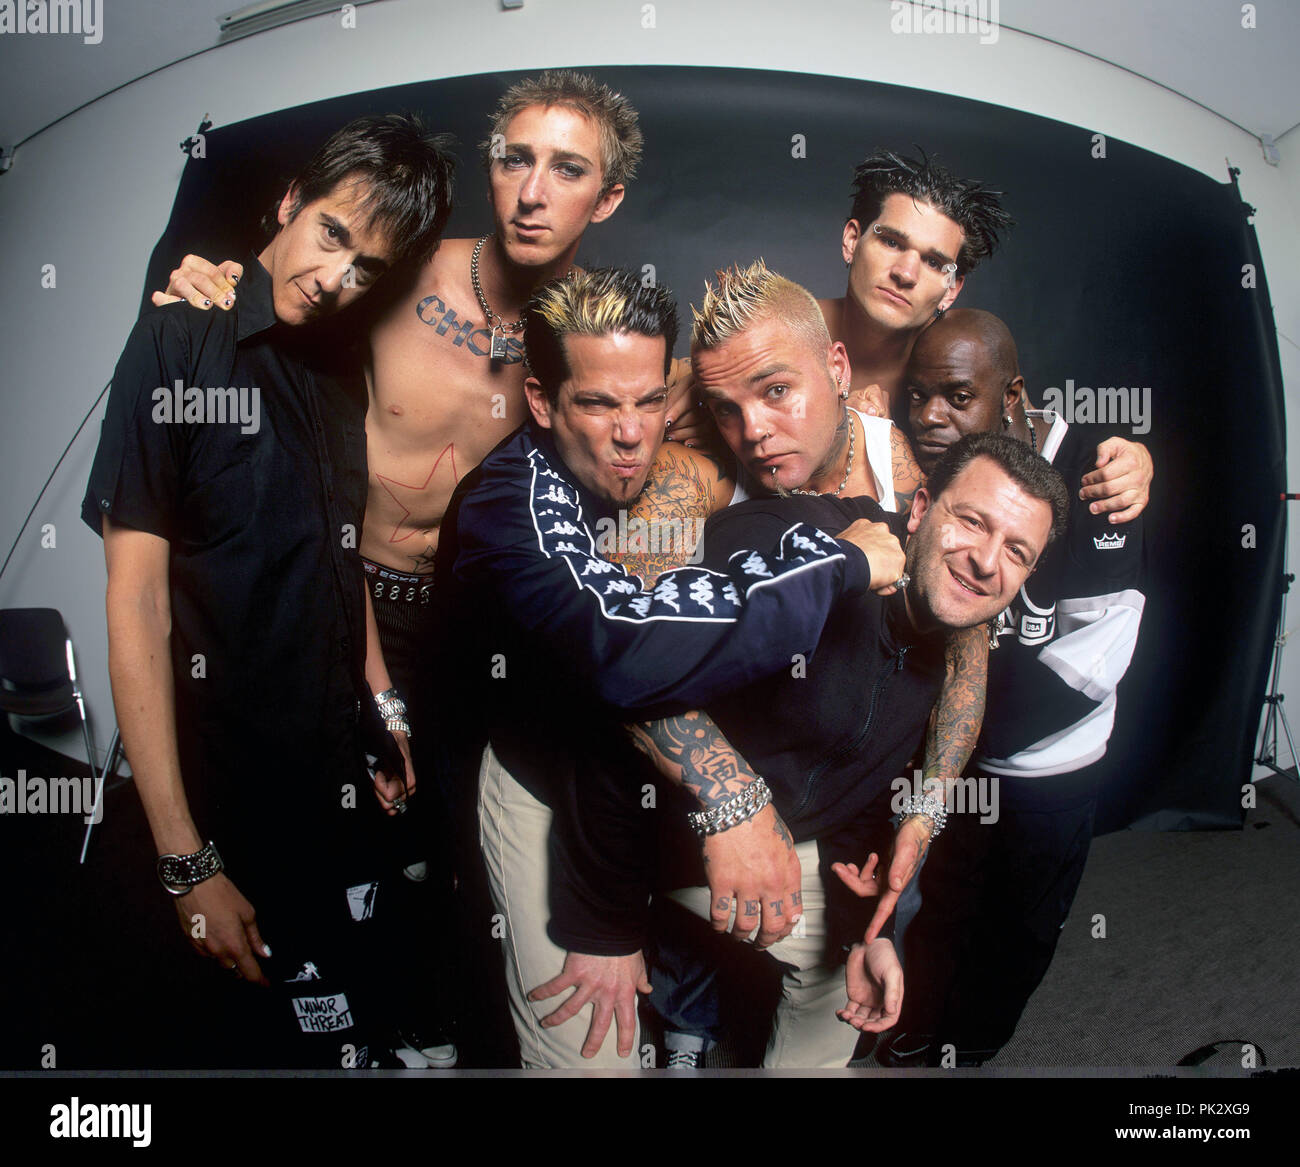 Crazy Town (mit Sänger Shifty Shellshock) on 19.03.2001 in Berlin. | usage worldwide - Stock Image